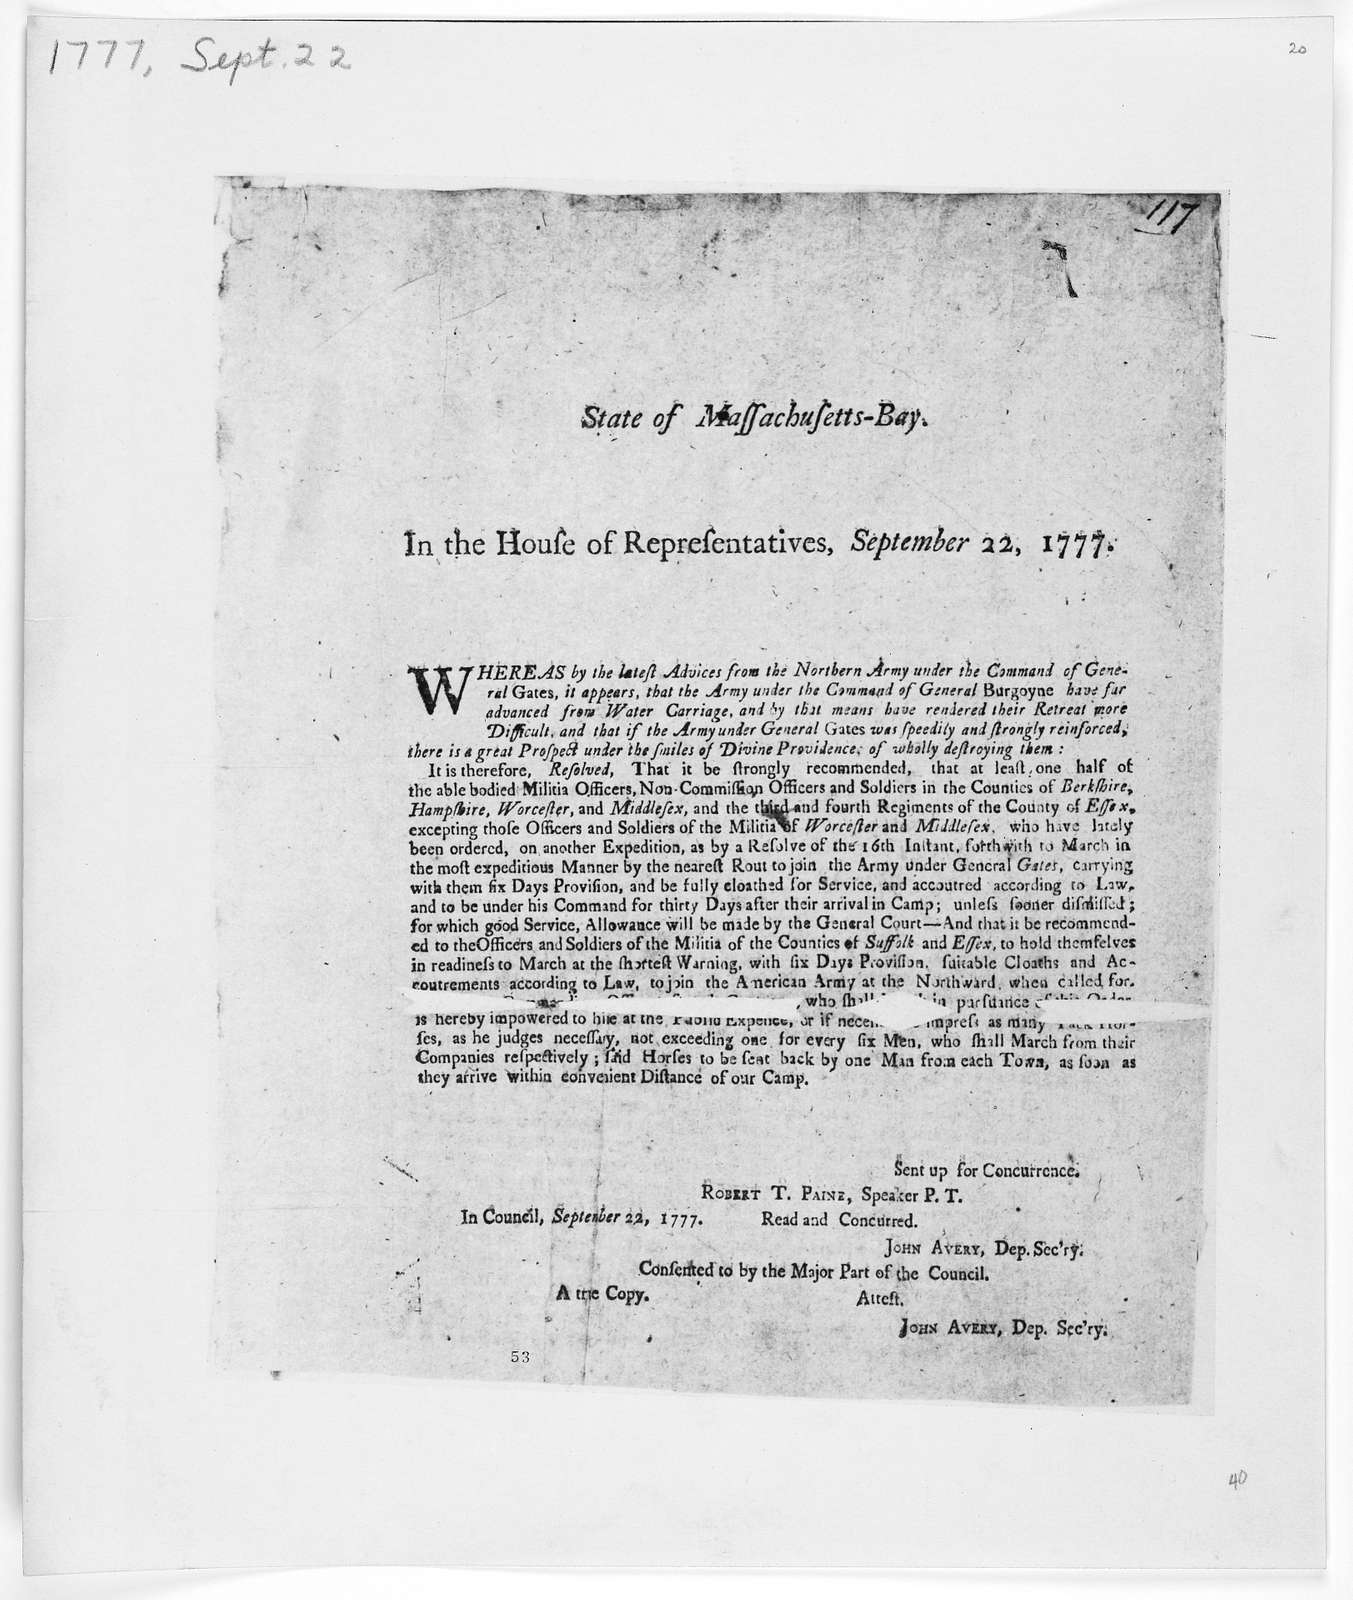 State of Massachusetts-Bay. In the House of representatives, September 22, 1777. Whereas by the latest advice from the Northern army under the command of General Gates, it appears, that the army under the Command of General Burgoyne ... [Boston: